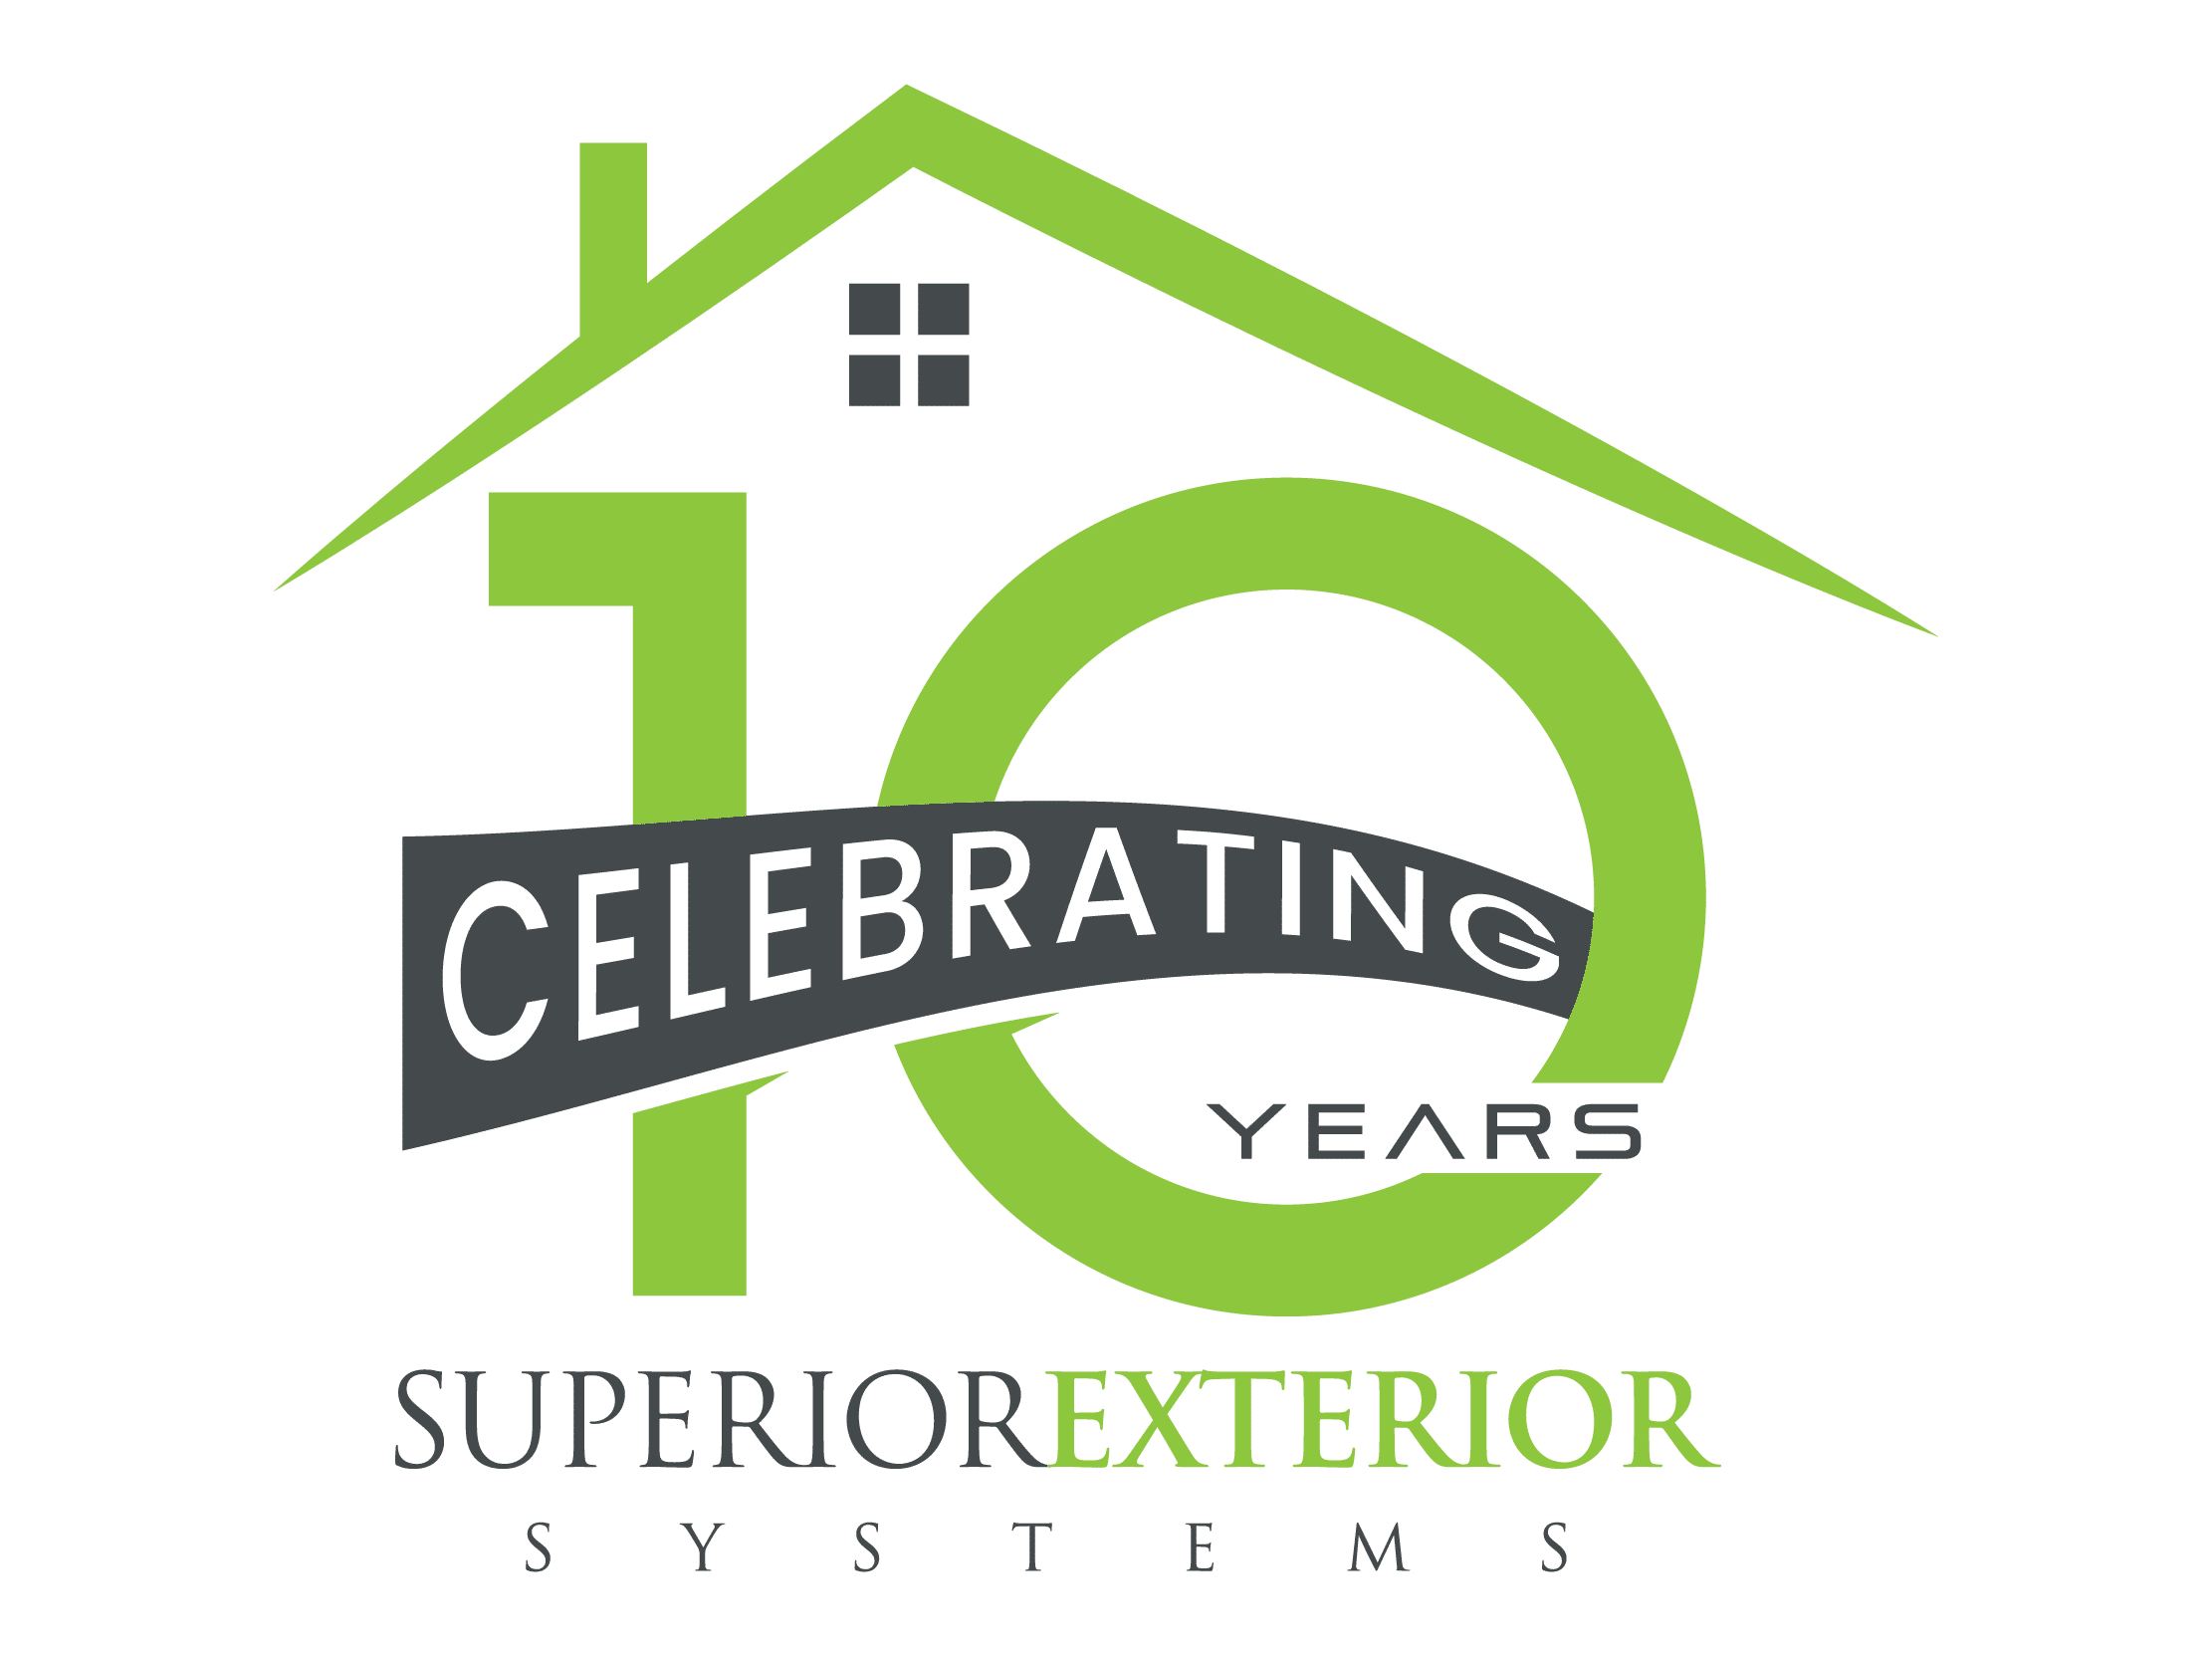 Superior Exterior Systems - 10 years - siding contractors